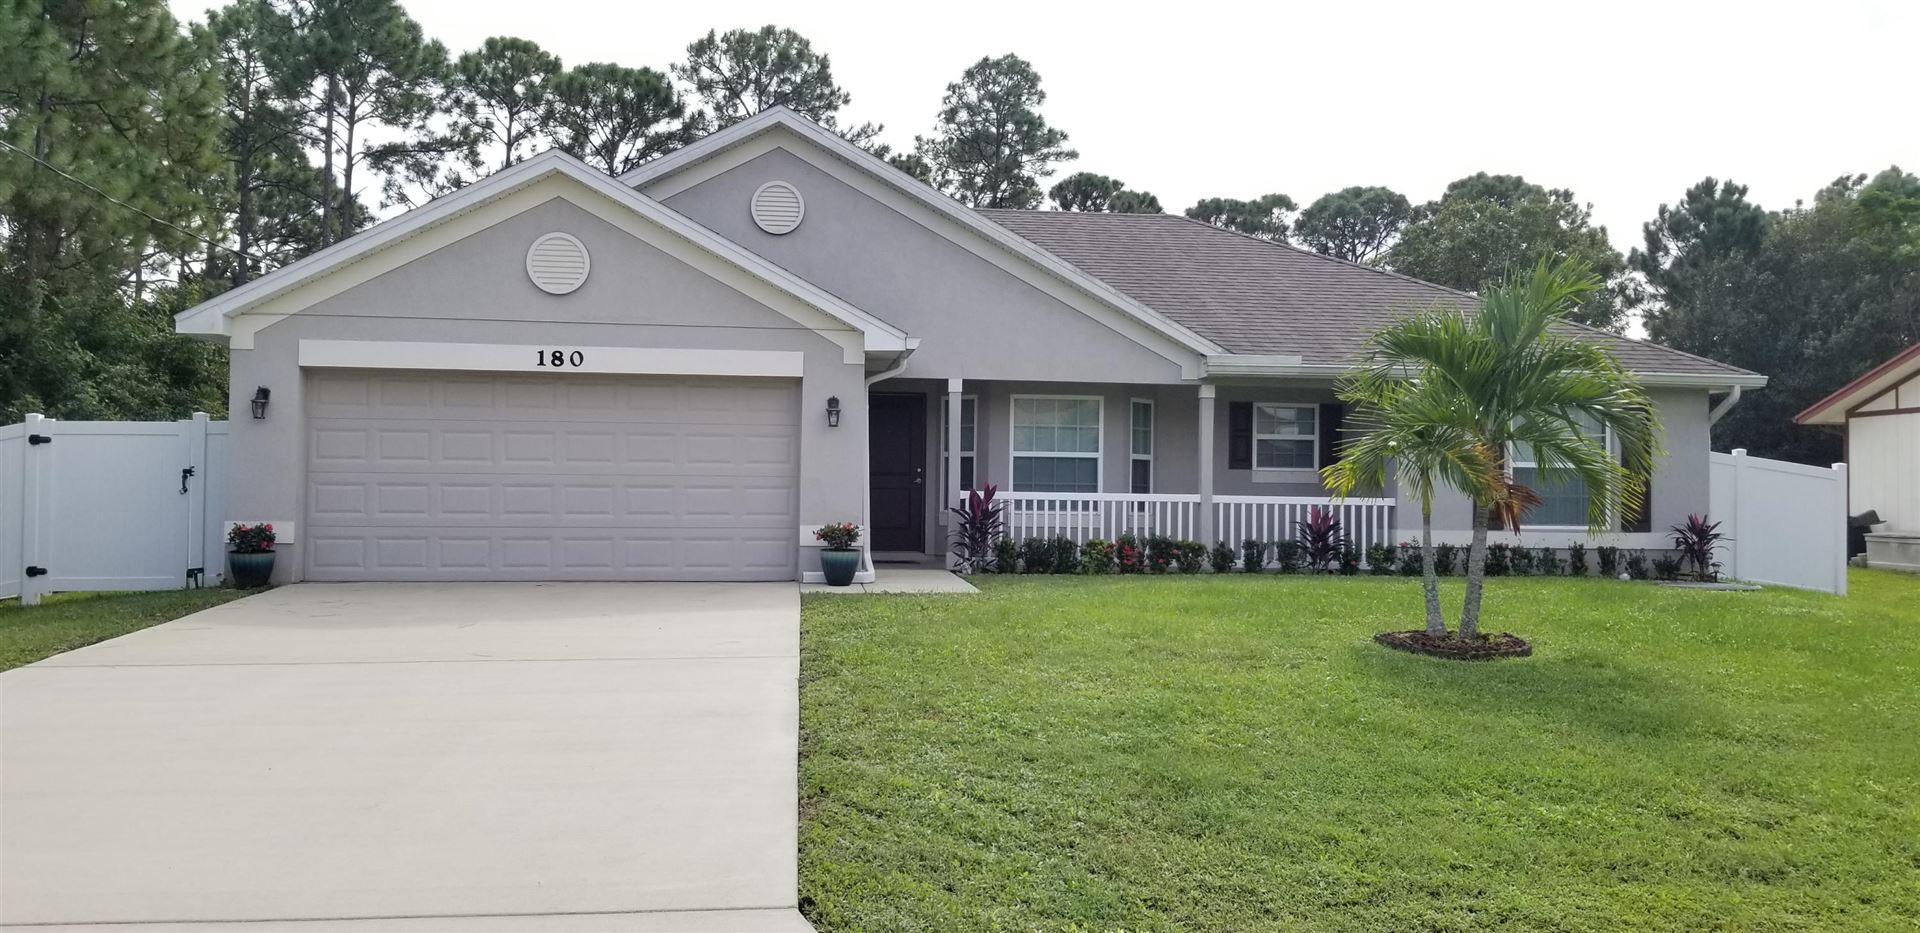 180 SW Voltair Terrace, Port Saint Lucie, FL 34984 - #: RX-10664130